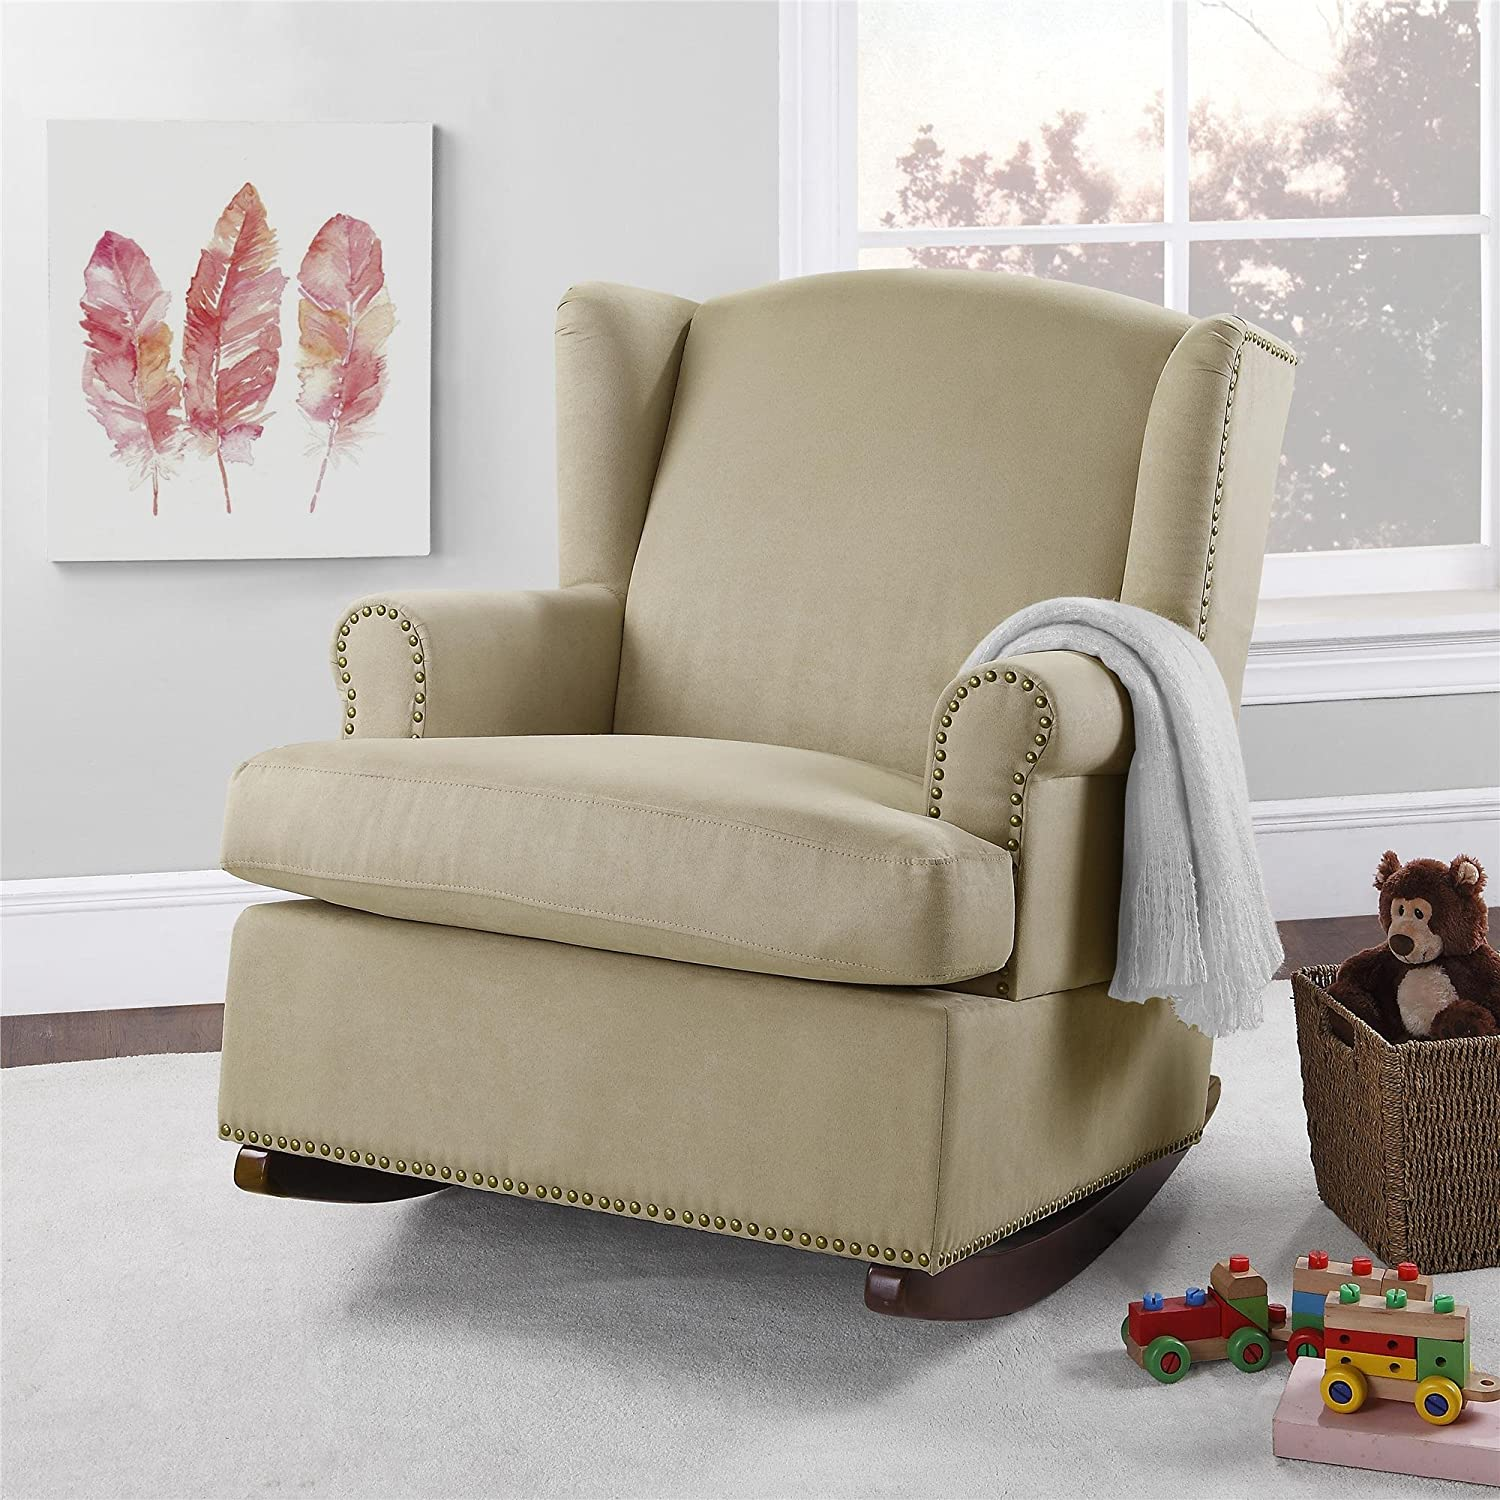 All products baby amp kids nursery furniture rocking chairs - Amazon Com Baby Relax Harlow Wingback Nursery Room Rocker With Nail Heads Beige Baby